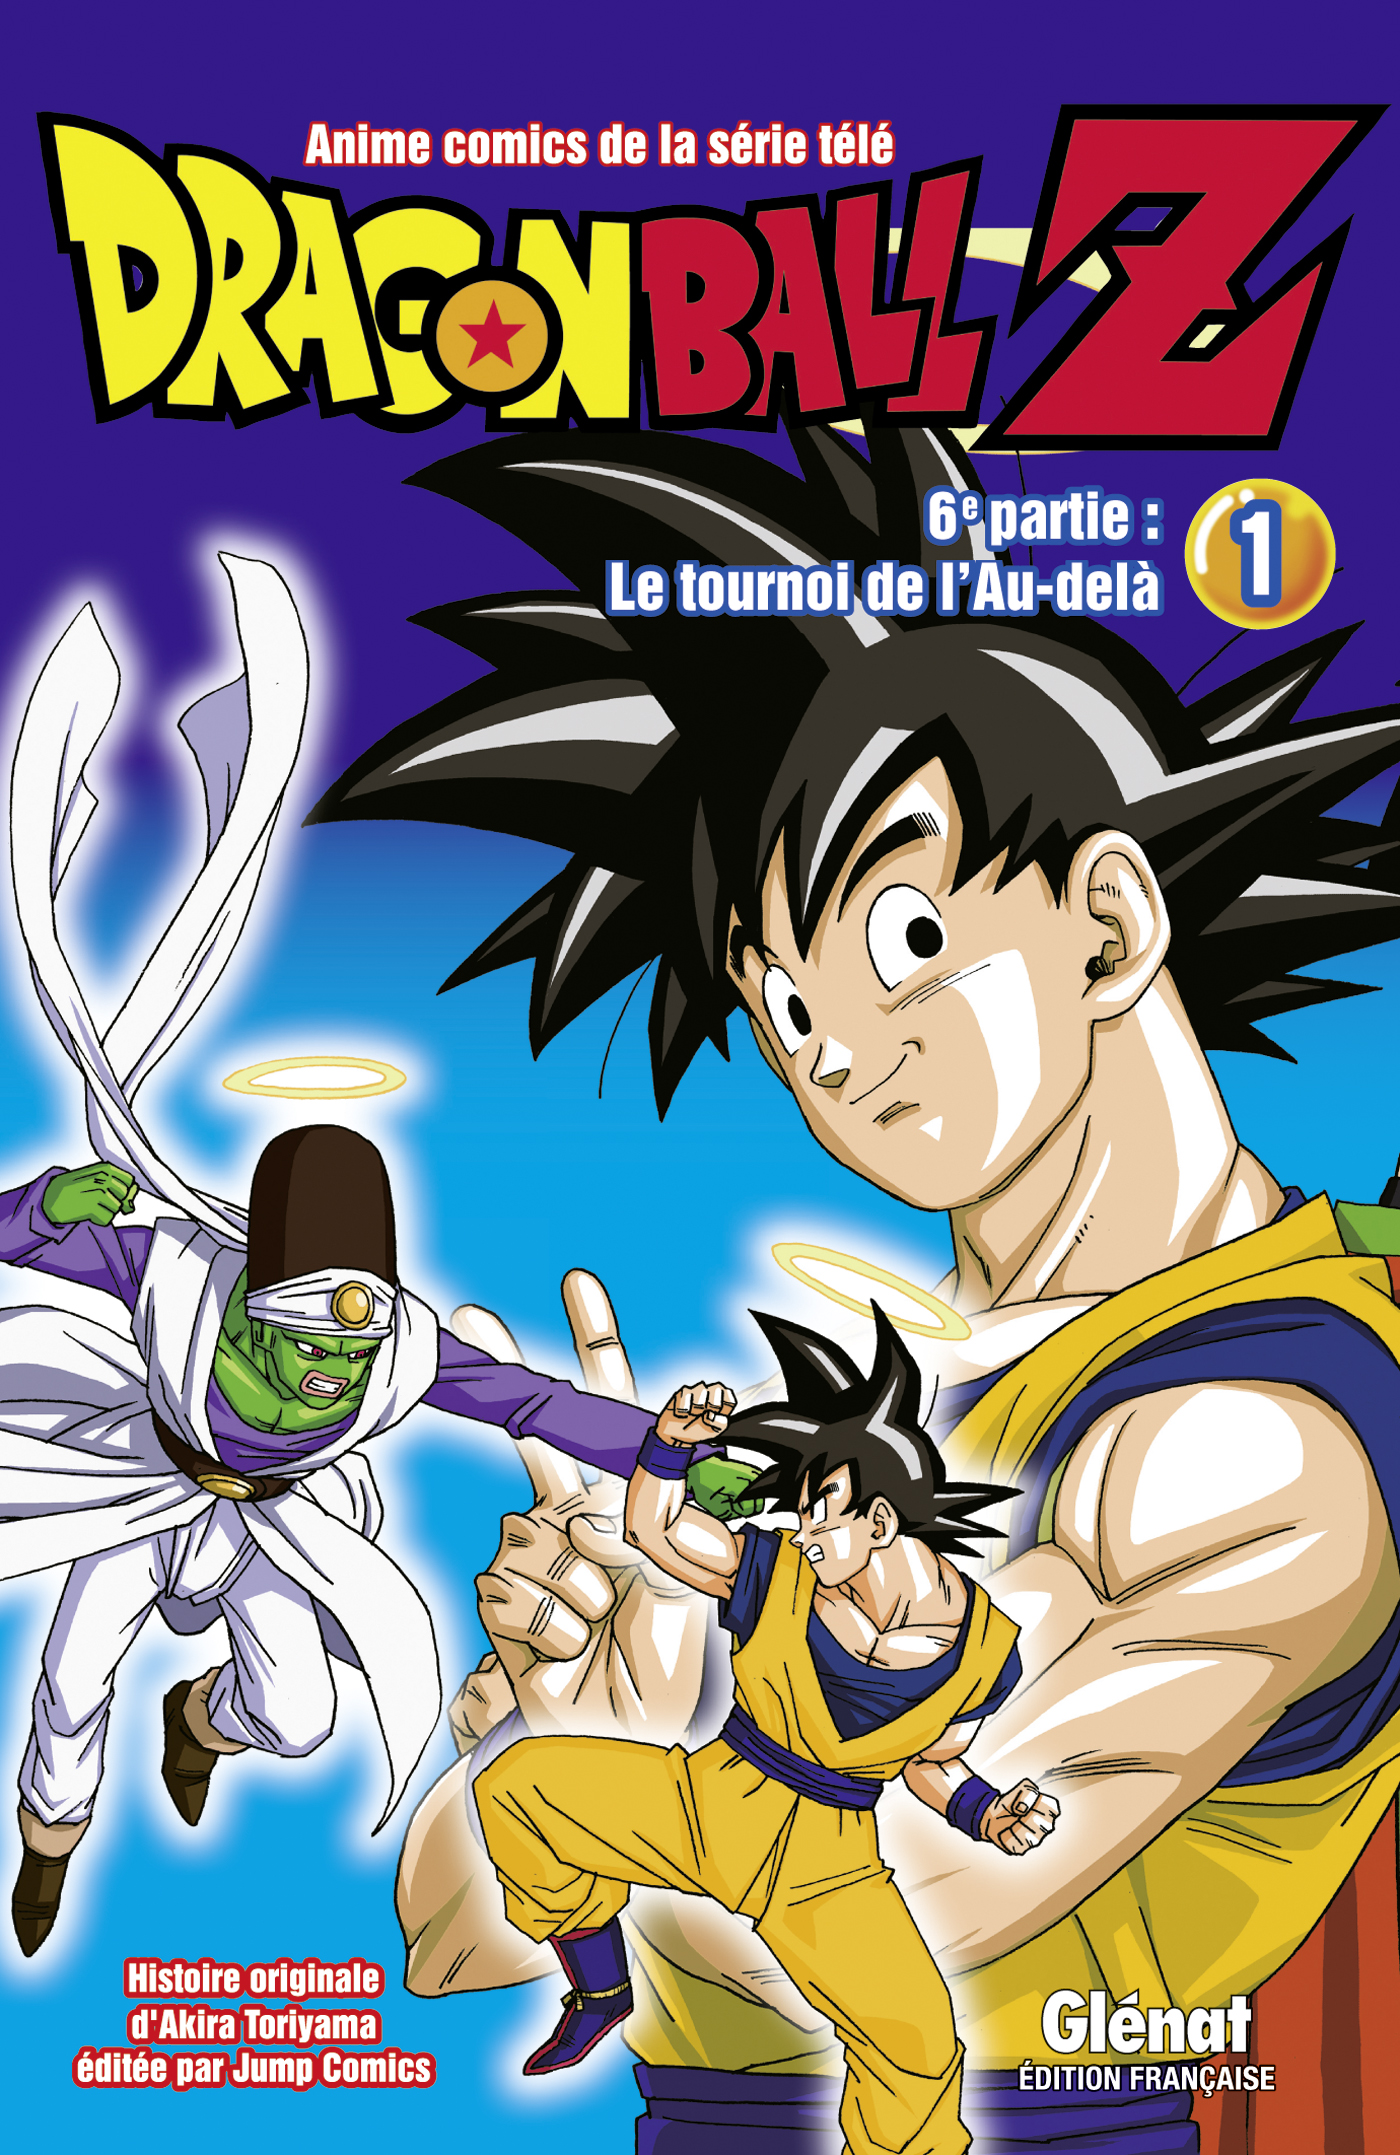 Dragon ball z 6 me partie le tournoi de l 39 au del 1 - Tout les image de dragon ball z ...